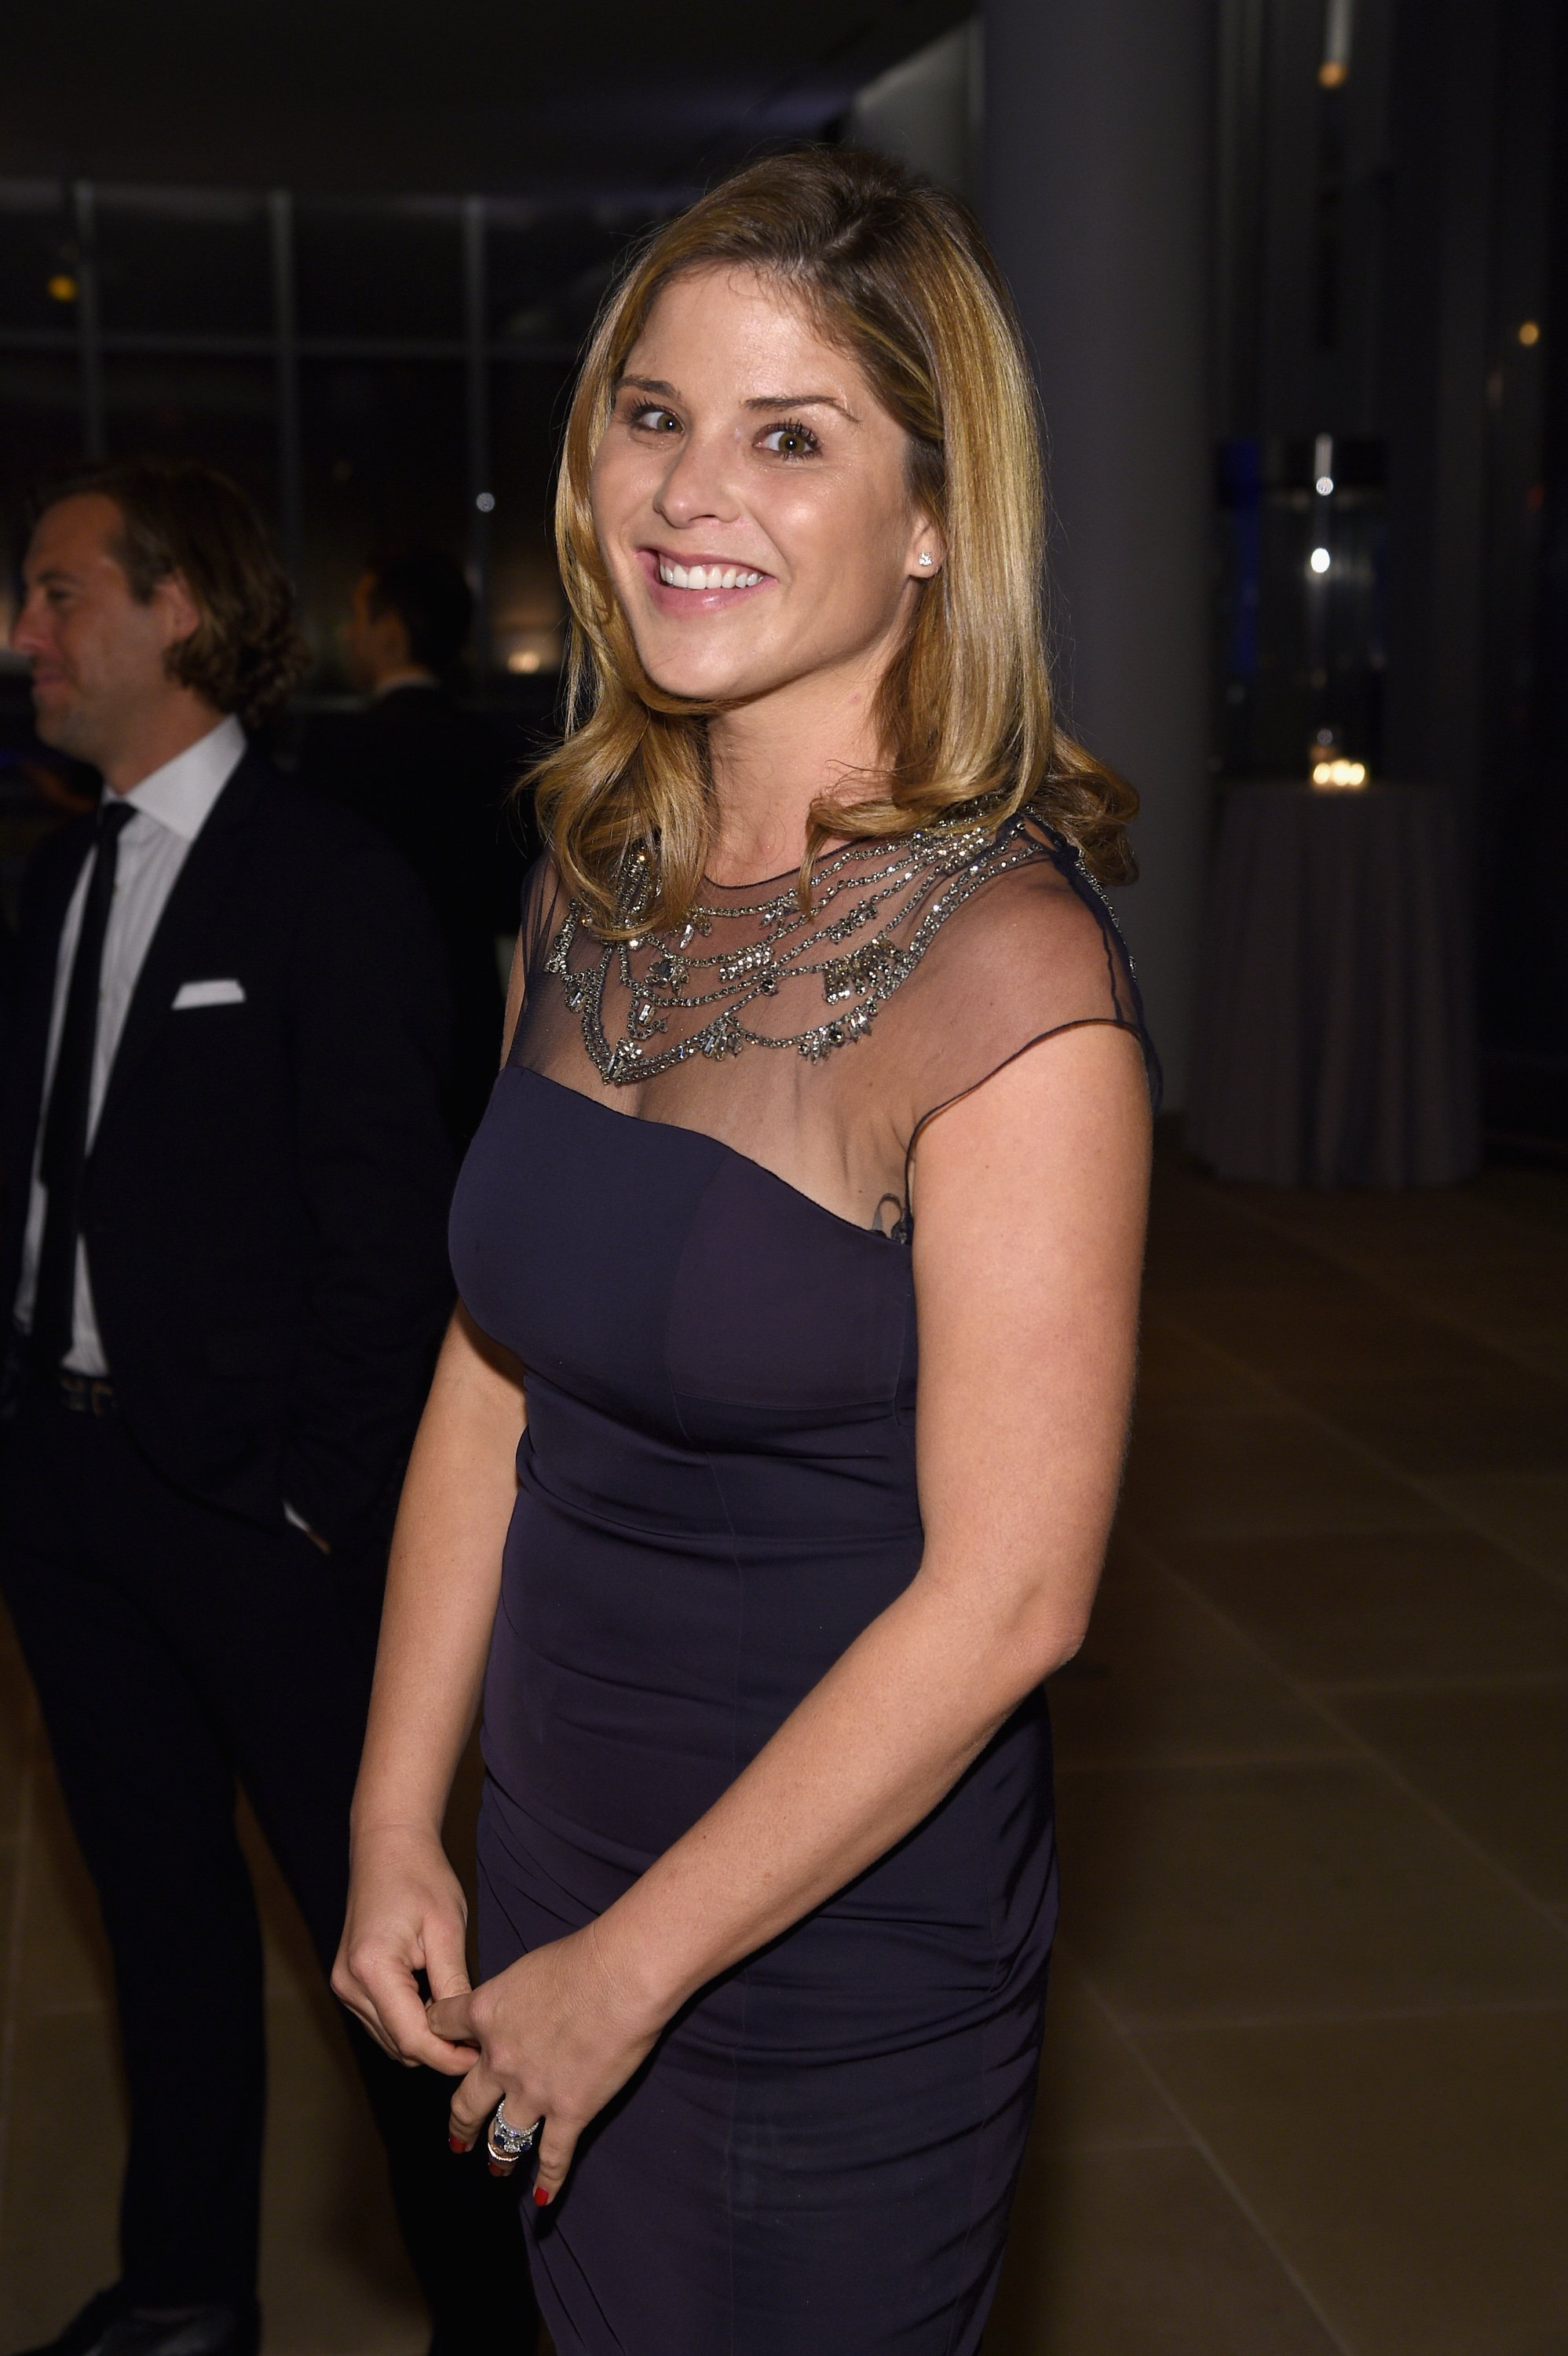 Jenna Bush Hager attends the GQ Gentlemen's Ball in New York City on October 22, 2014 | Photo: Getty Images